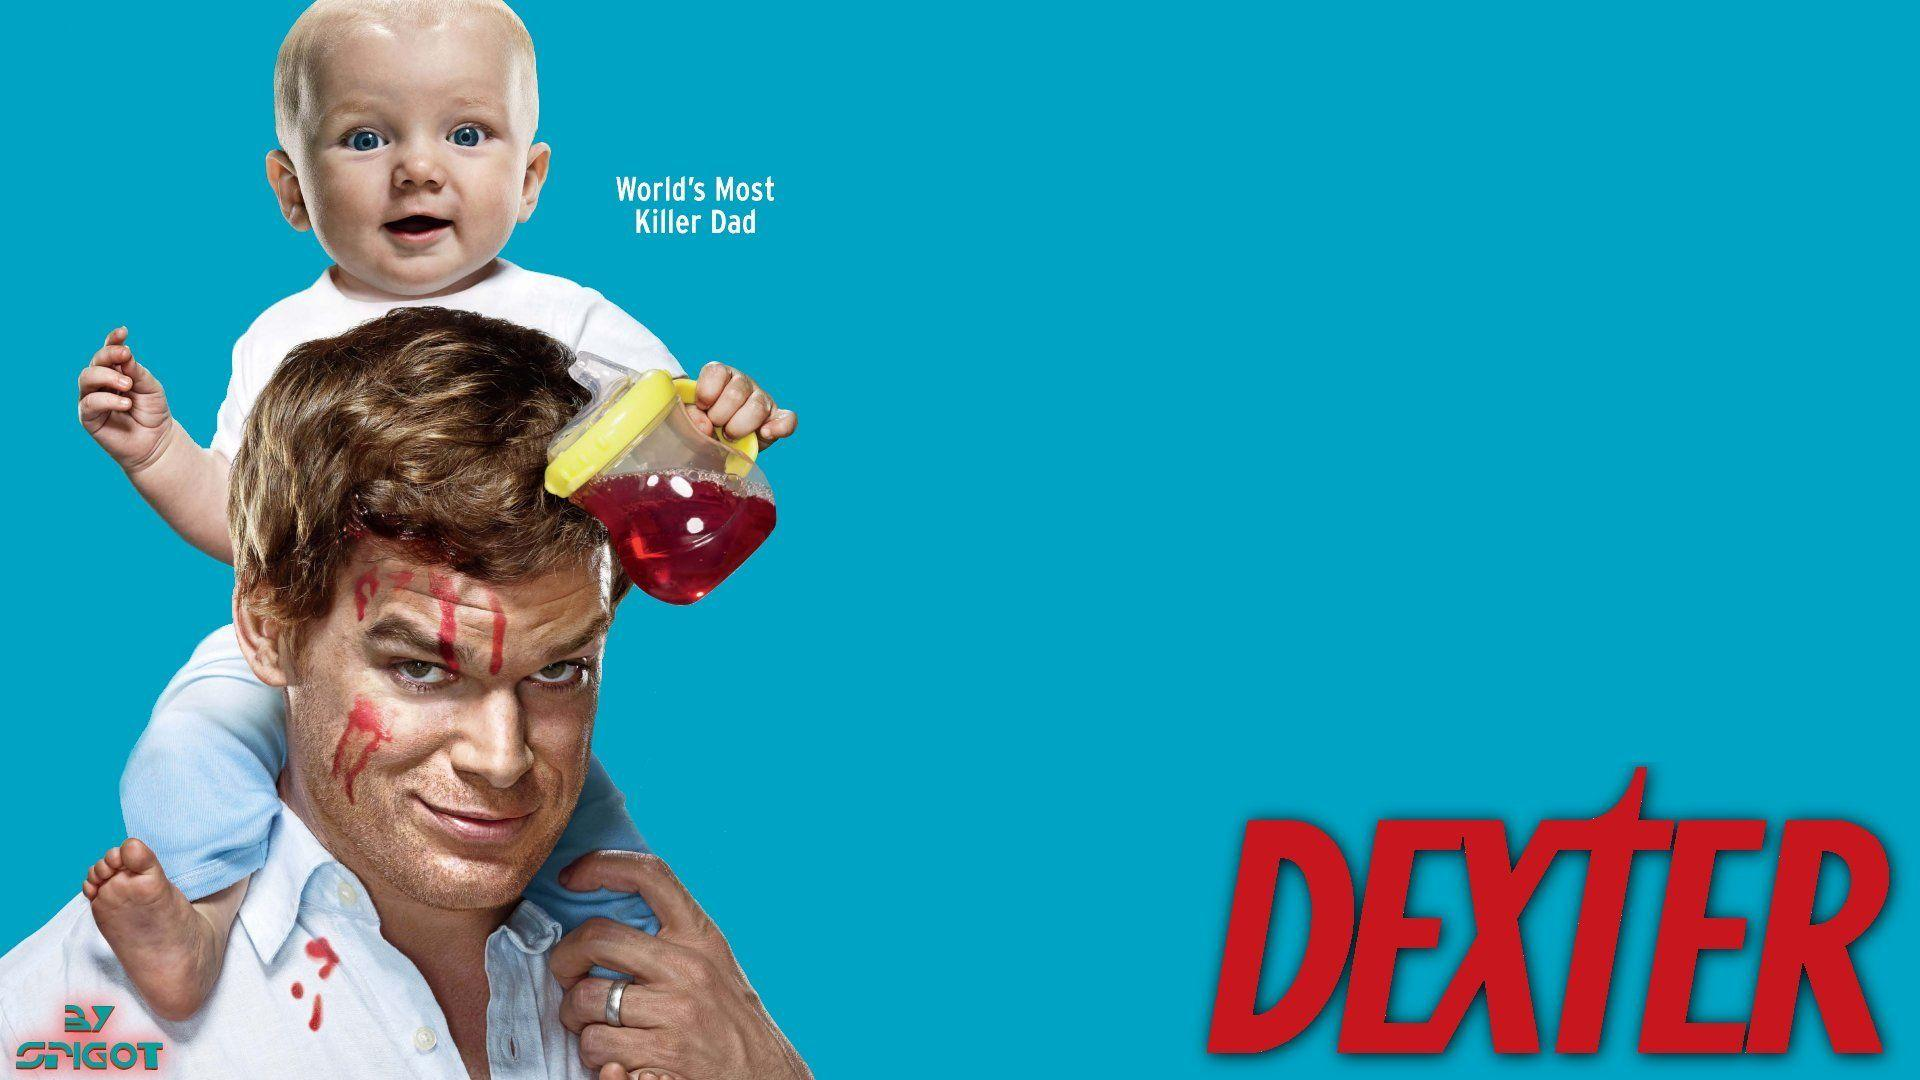 Dexter Wallpaper | George Spigot's Blog